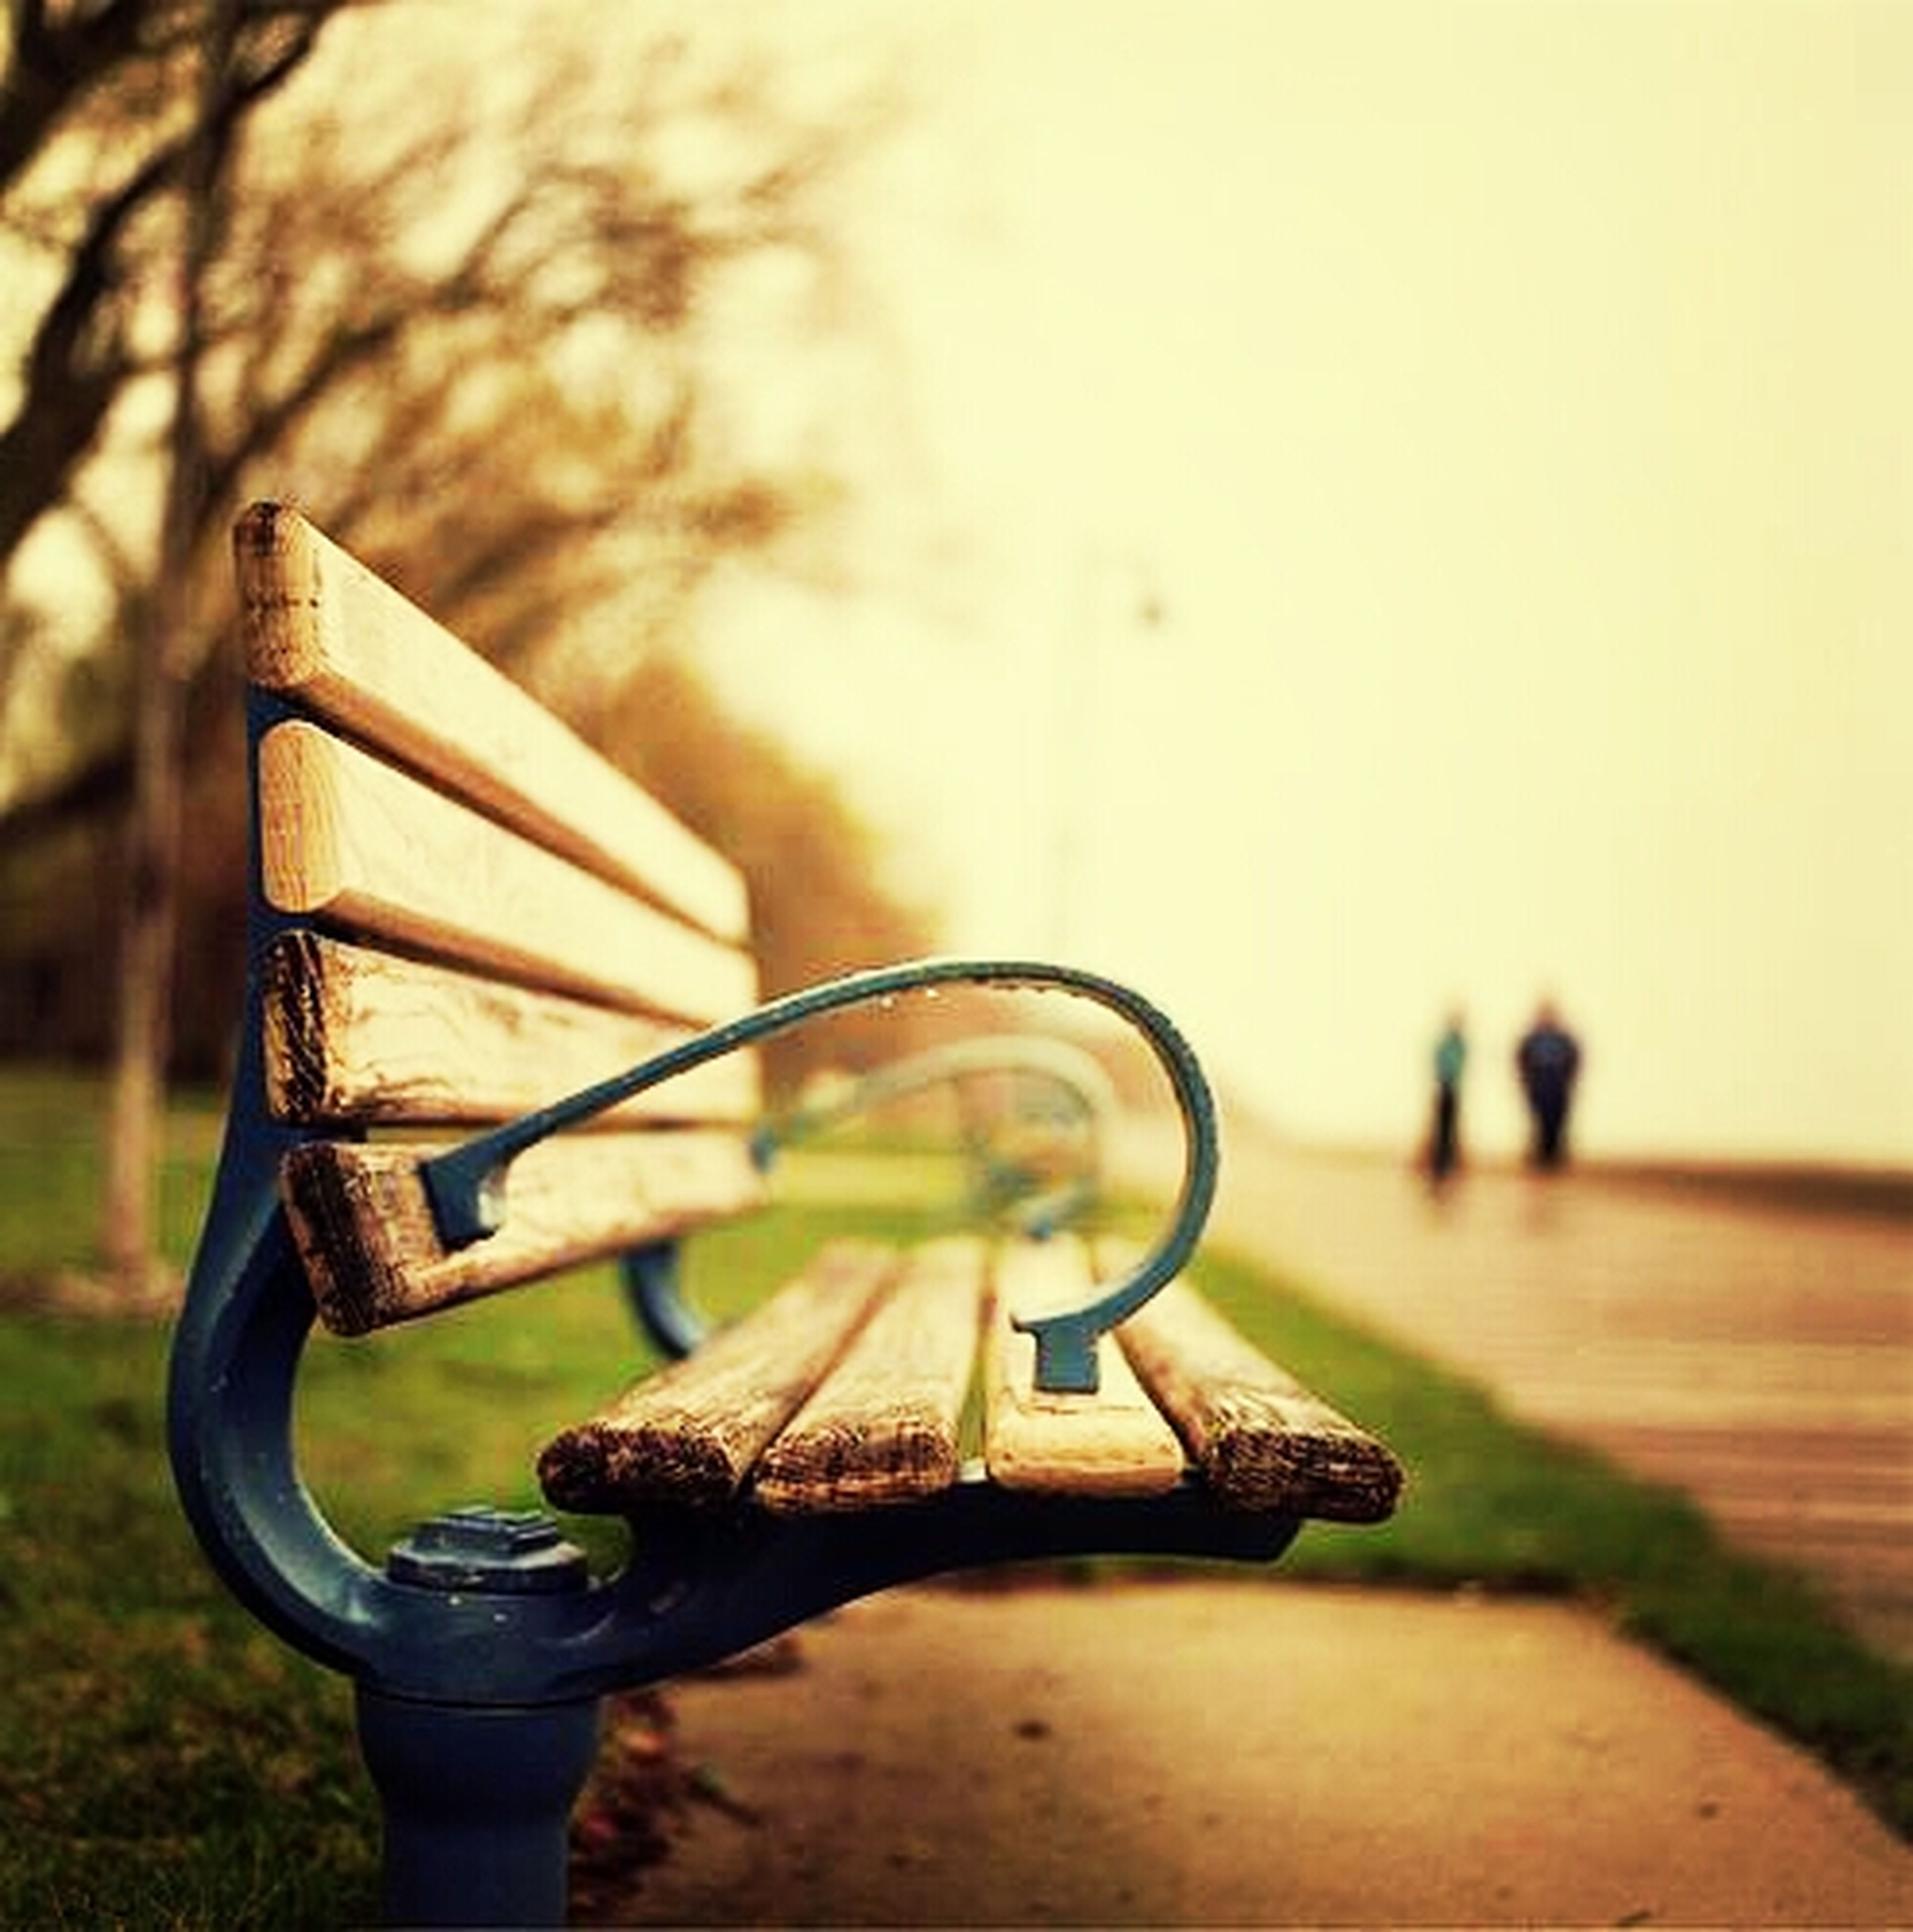 focus on foreground, close-up, metal, absence, tree, selective focus, still life, empty, day, bench, abandoned, outdoors, wood - material, old, table, no people, chair, park - man made space, metallic, field